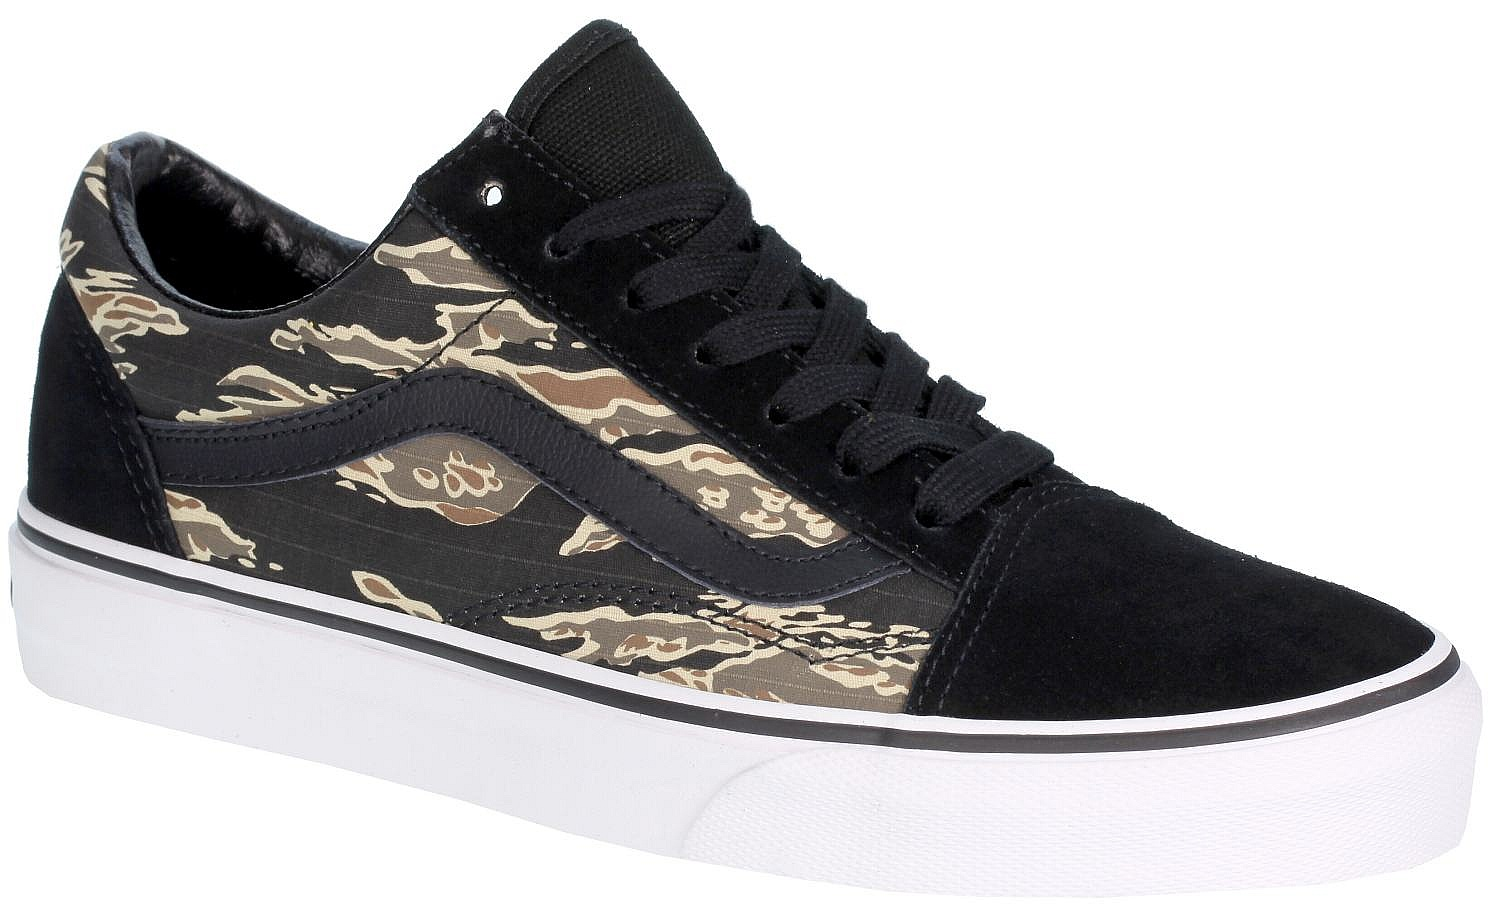 bf85888979 Vans Old Skool Shoes - Suede Tiger Camo Black - Snowboard shop ...